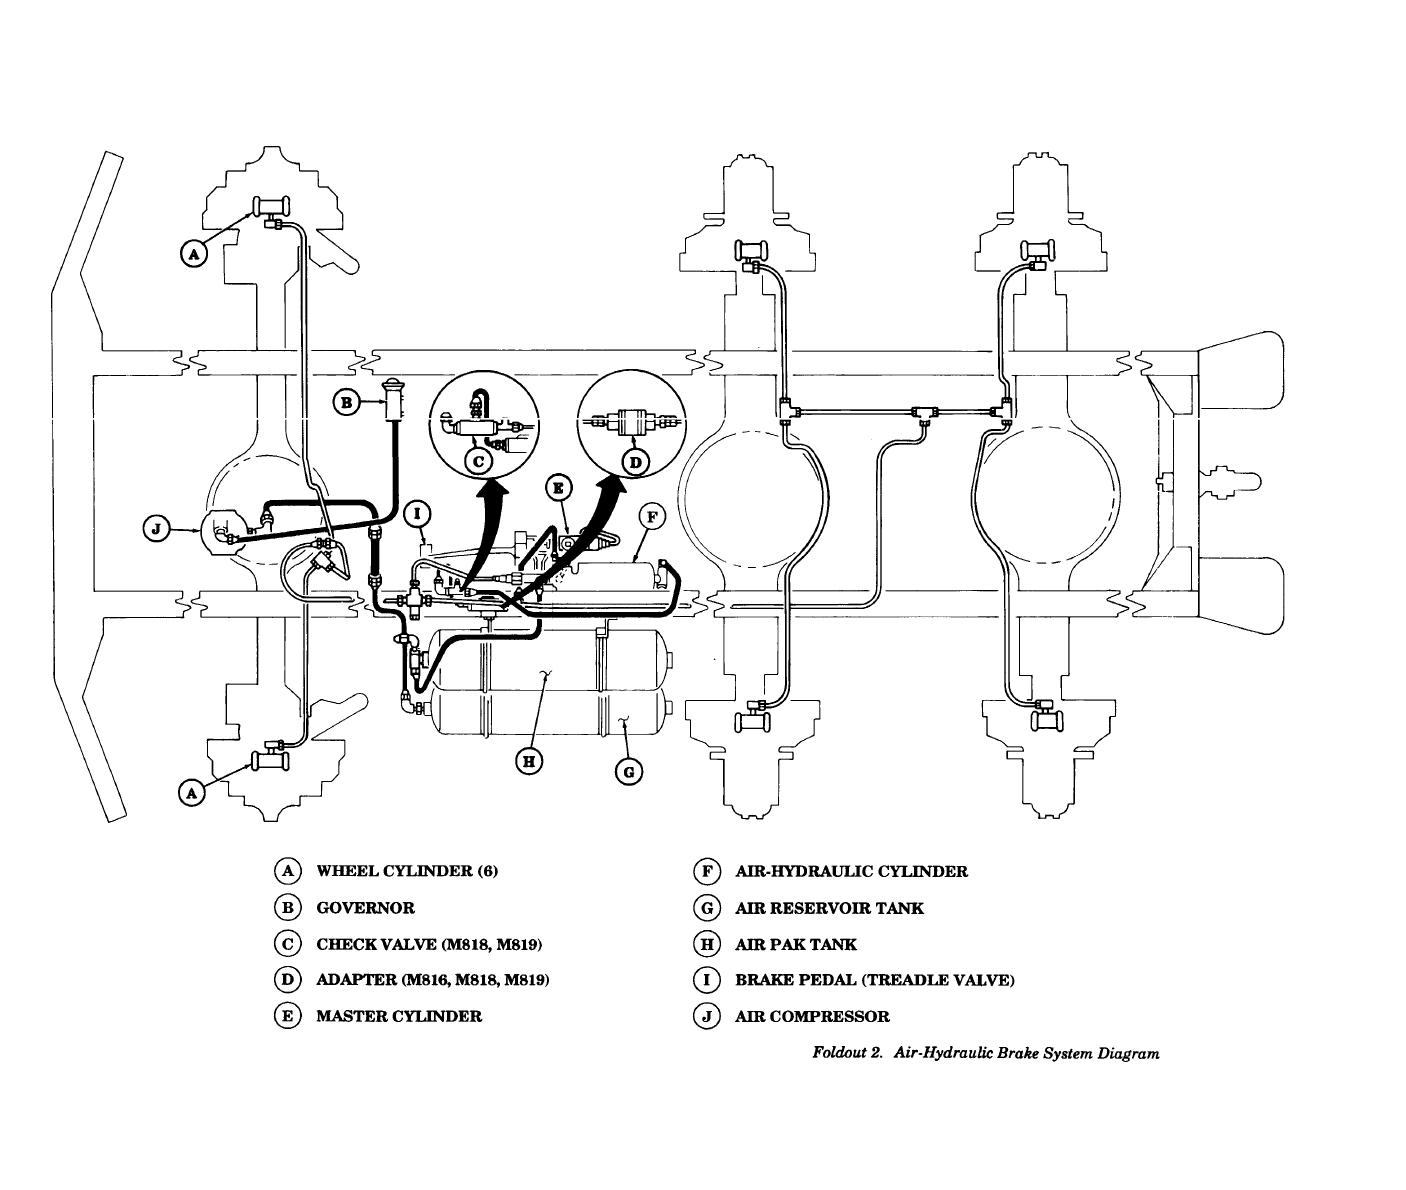 Foldout 2. Air-Hydraulic Brake System Diagram